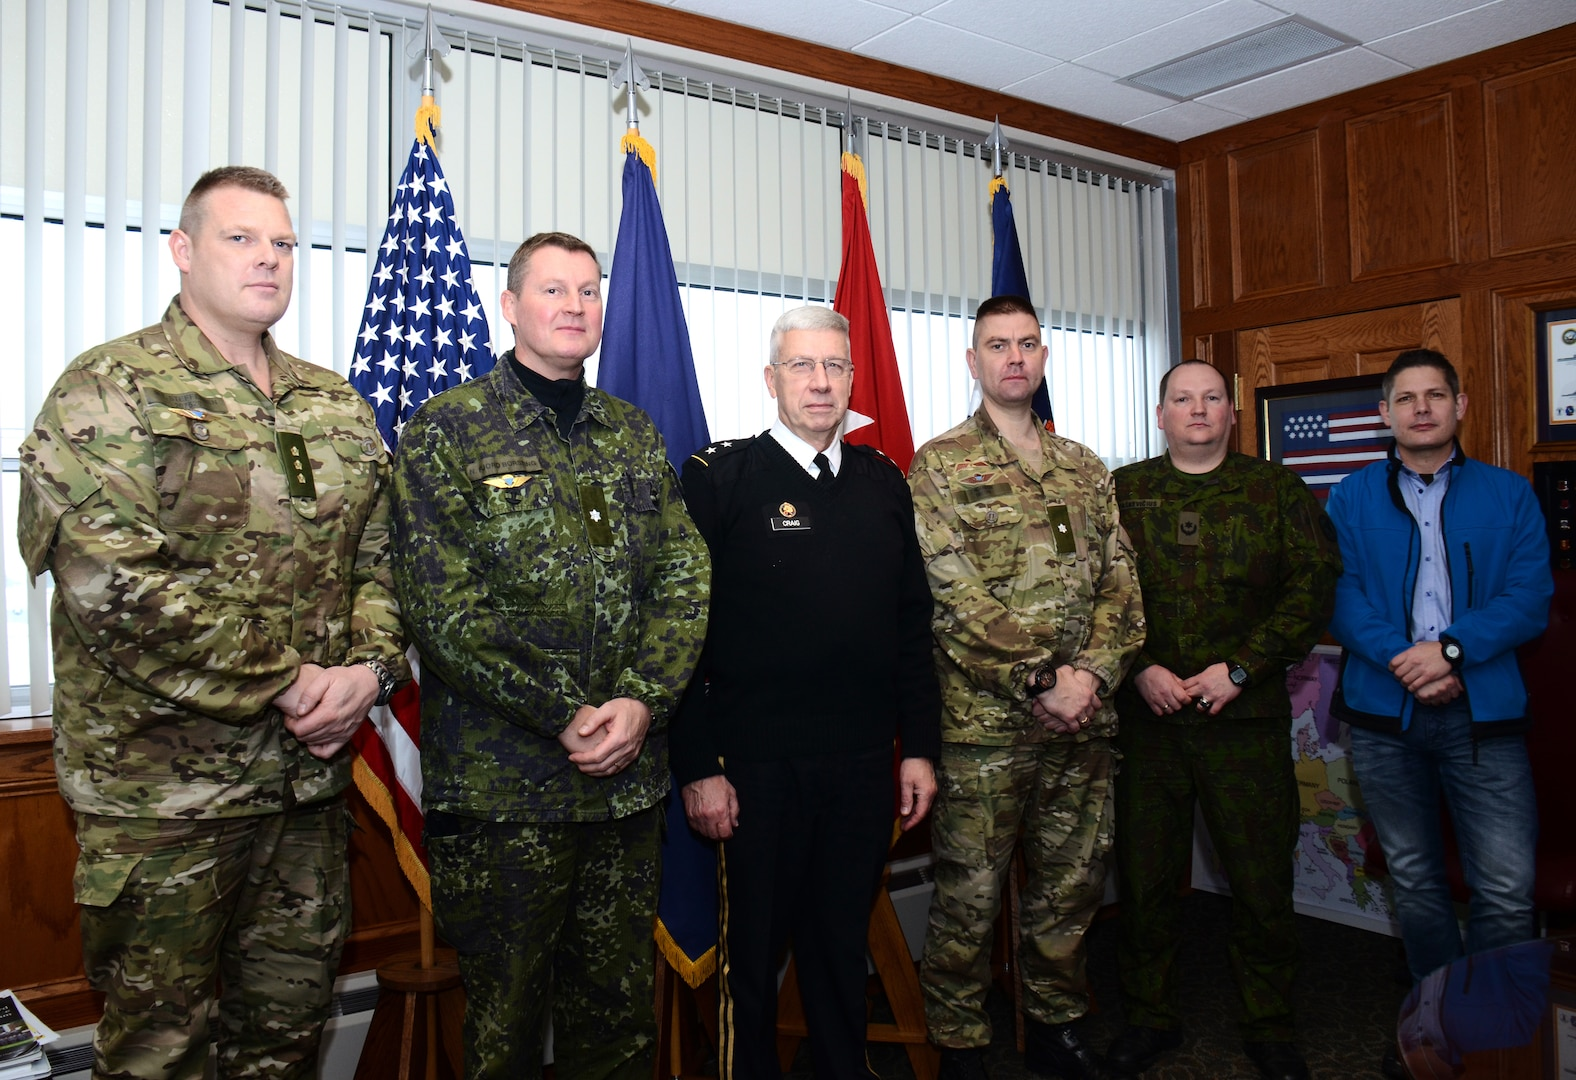 Personnel from the Danish Division meet with Pennsylvania Adjutant General Maj. Gen. Wesley Craig during a visit to Fort Indiantown Gap, Pennsylvania., Dec. 11, 2014. The Danish Division is on a seven-day collaborative planning visit to Pennsylvania to prepare for Saber Strike 2015 with the 28th Infantry Division, Pennsylvania Army National Guard.